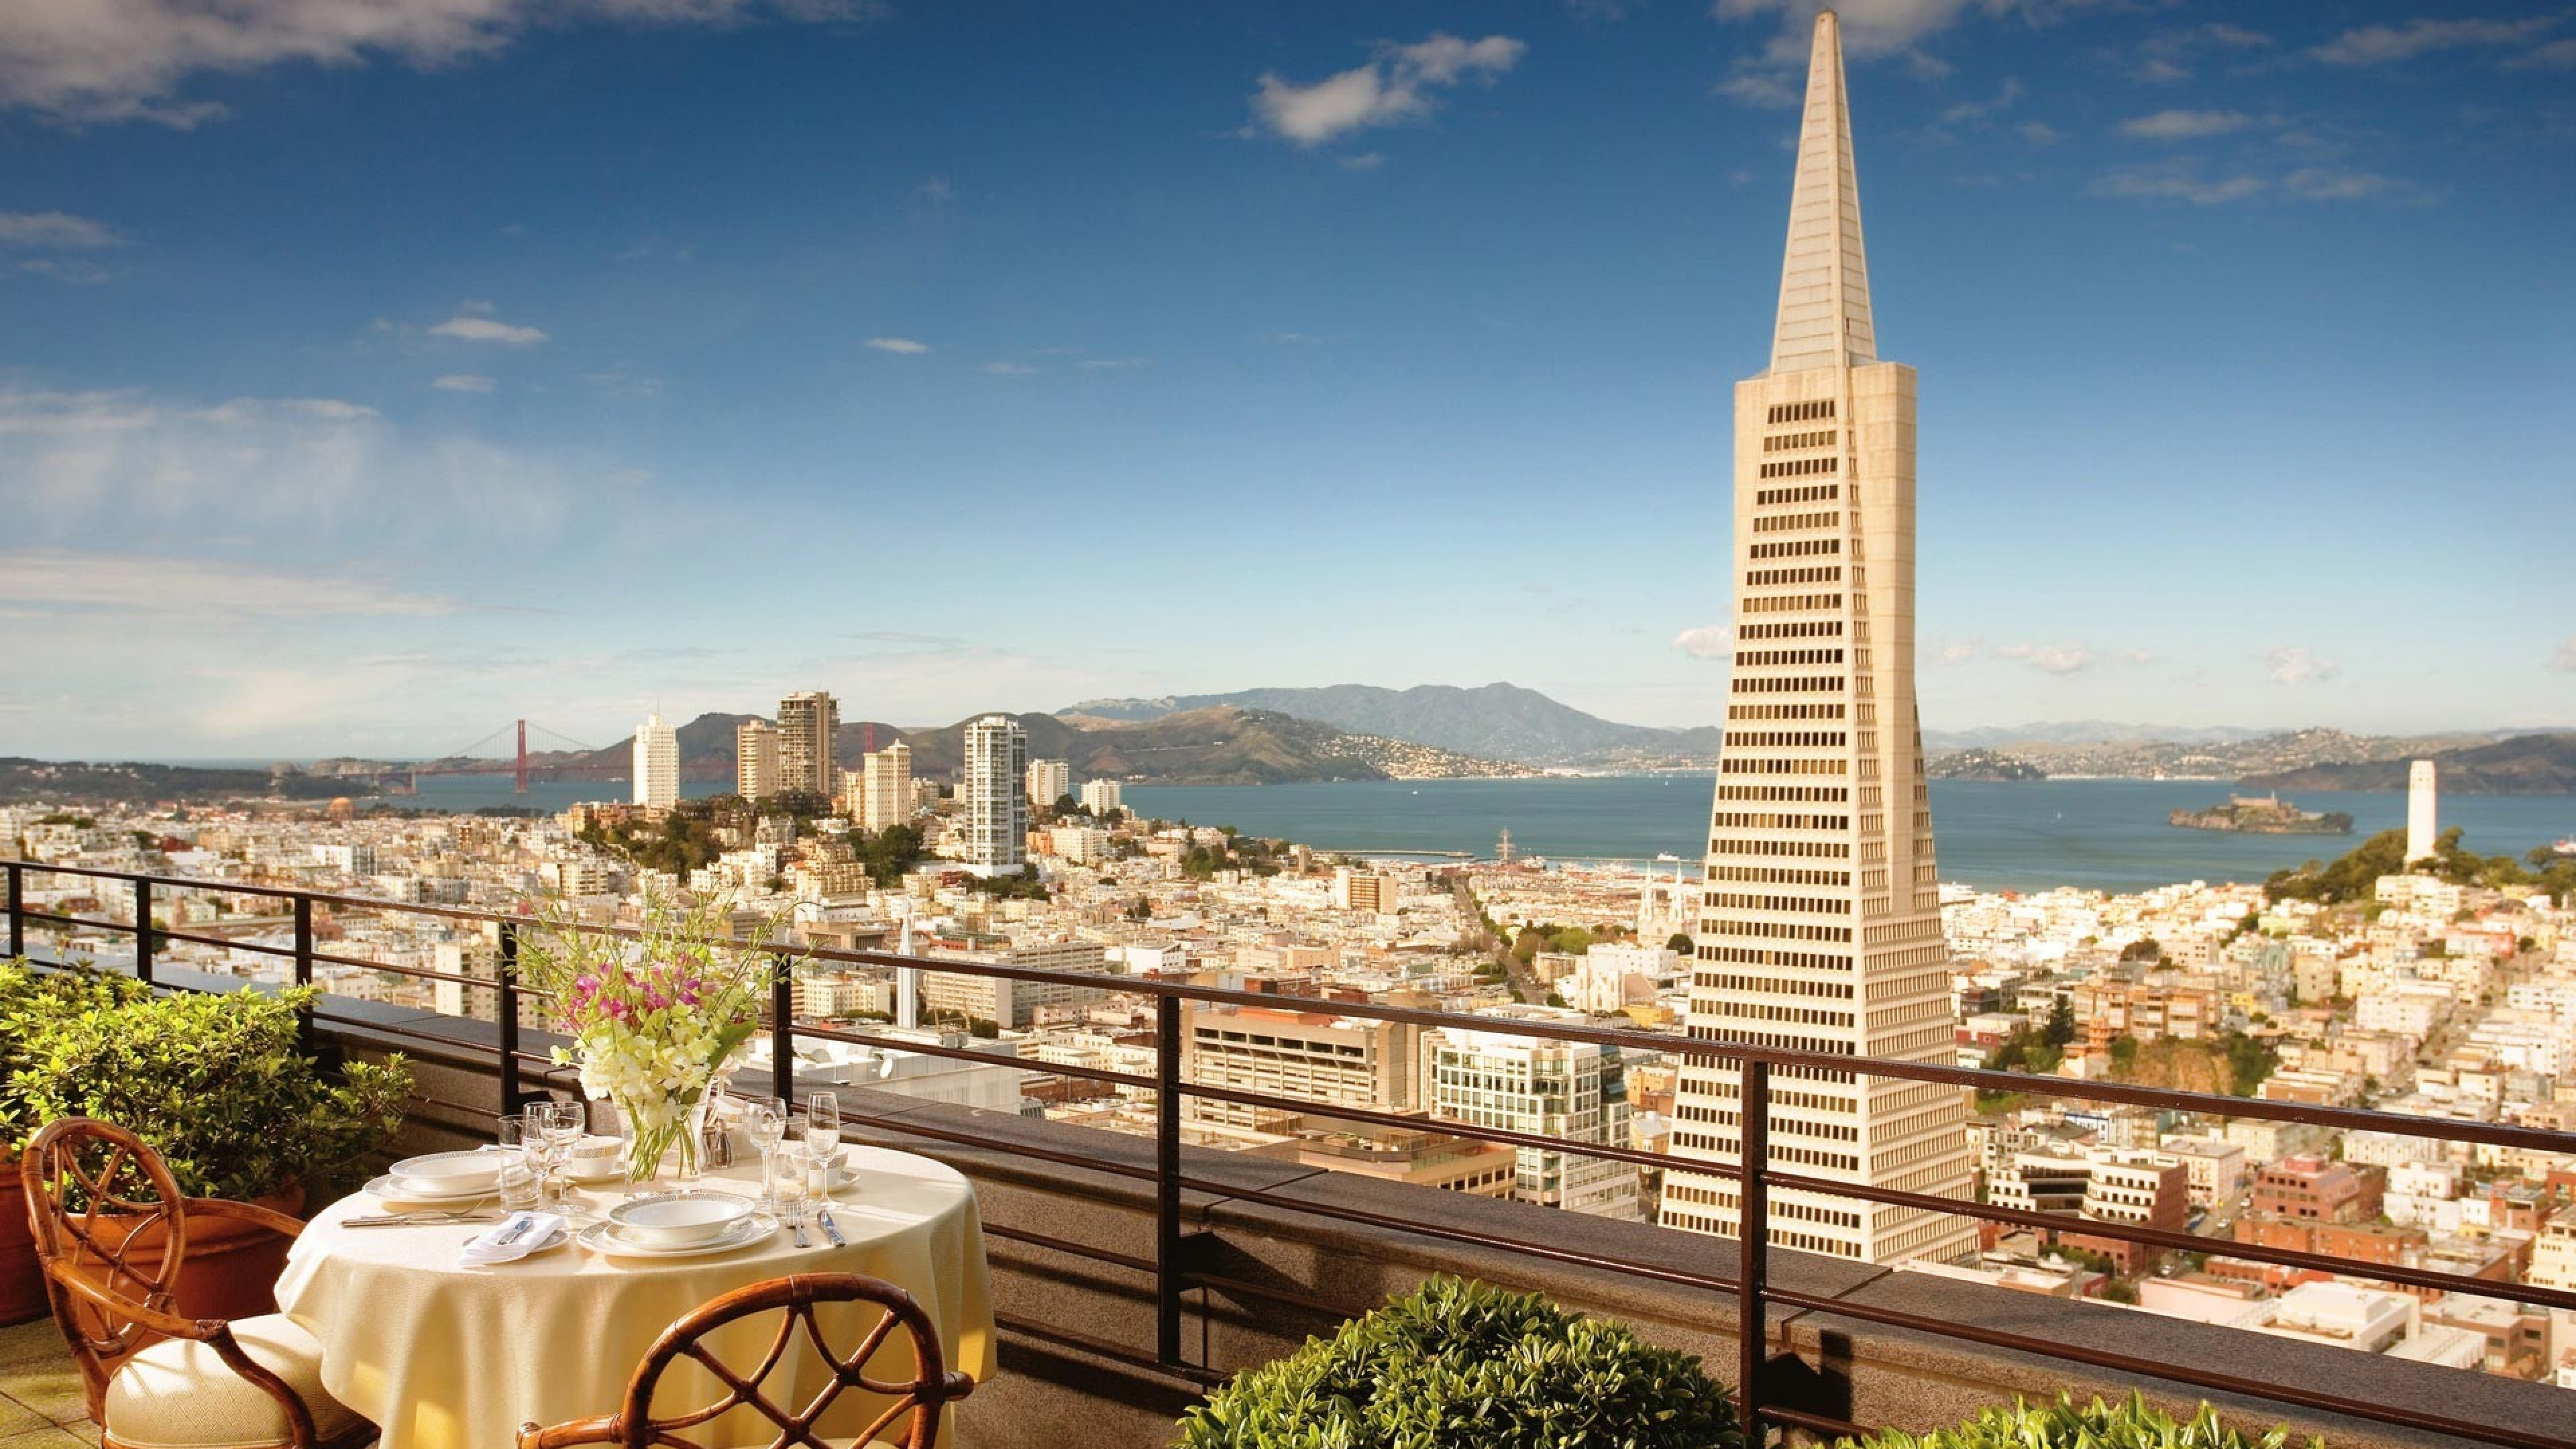 san   francisco balcony hotel look beautiful 3840x2160